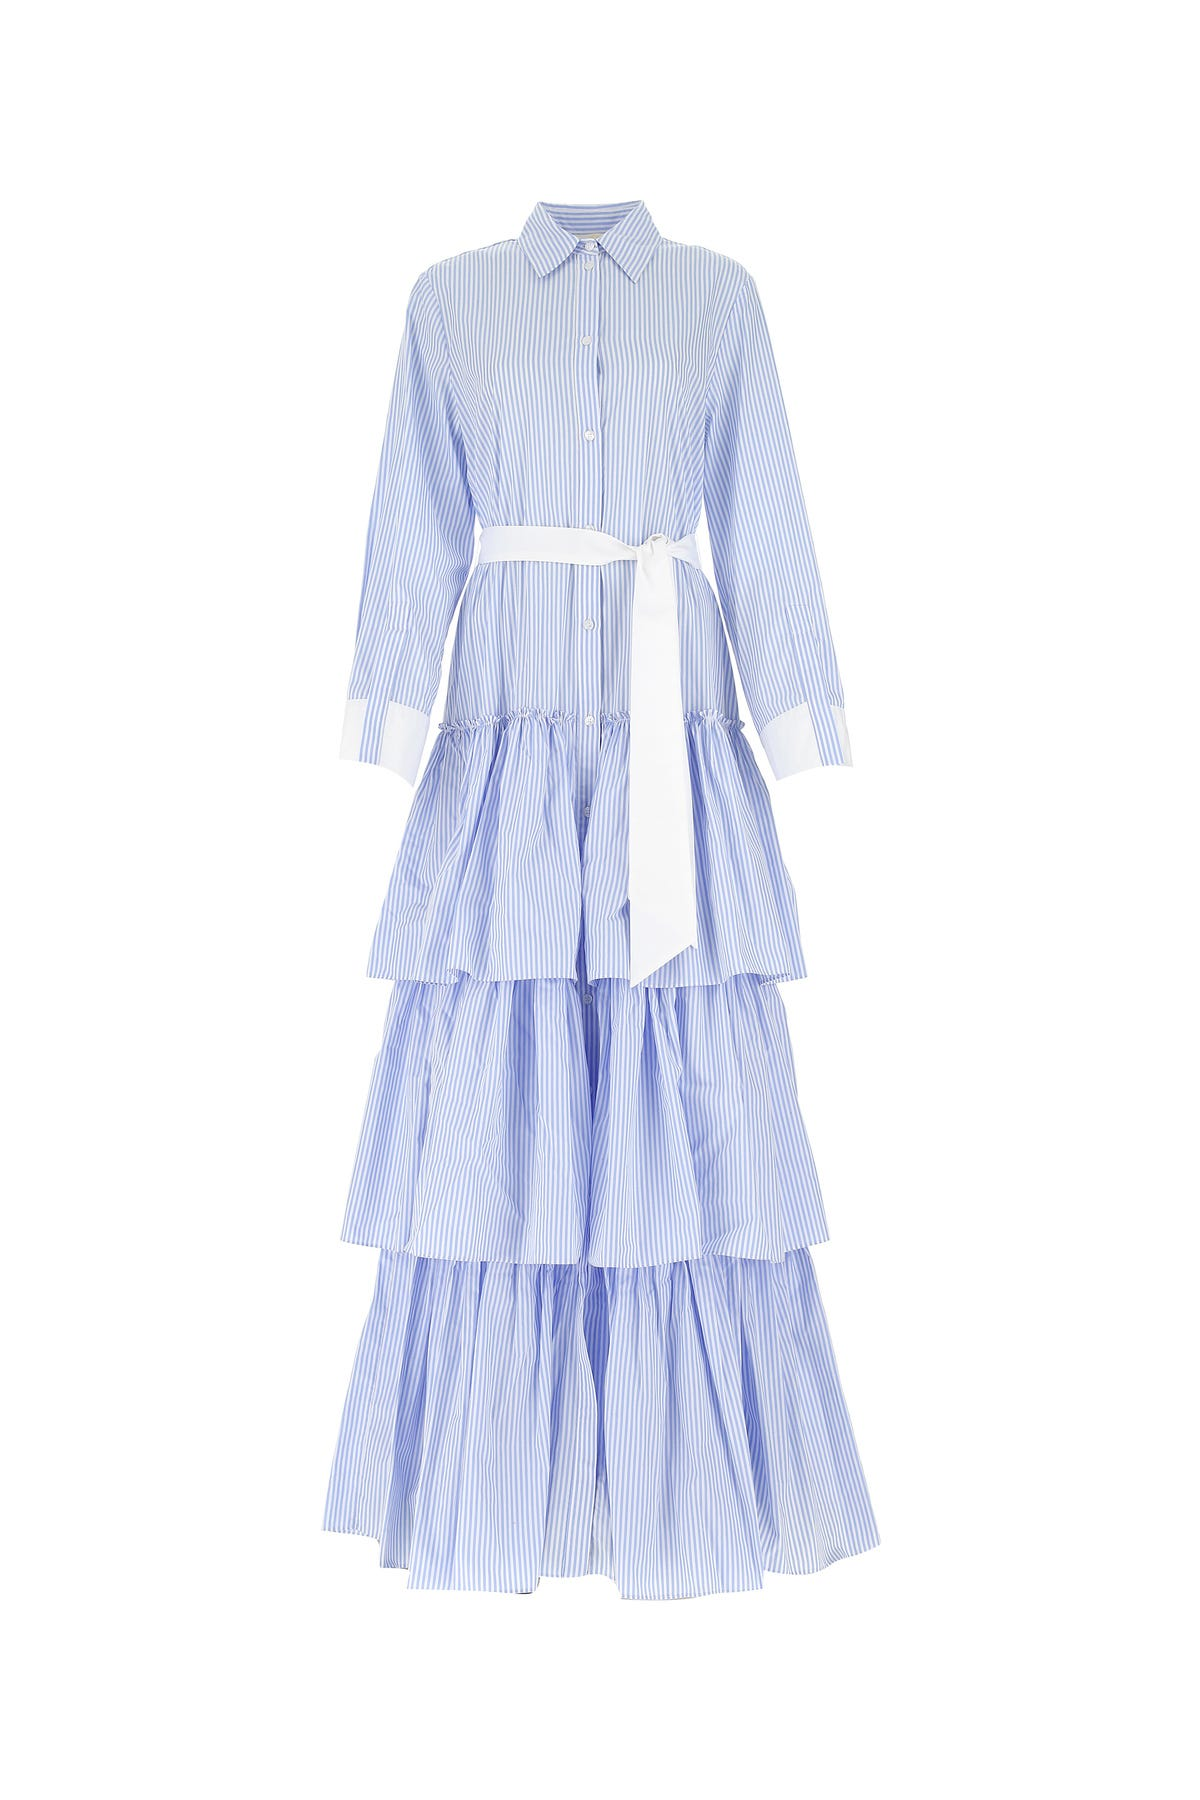 Sara Battaglia Long Dress In Light Blue